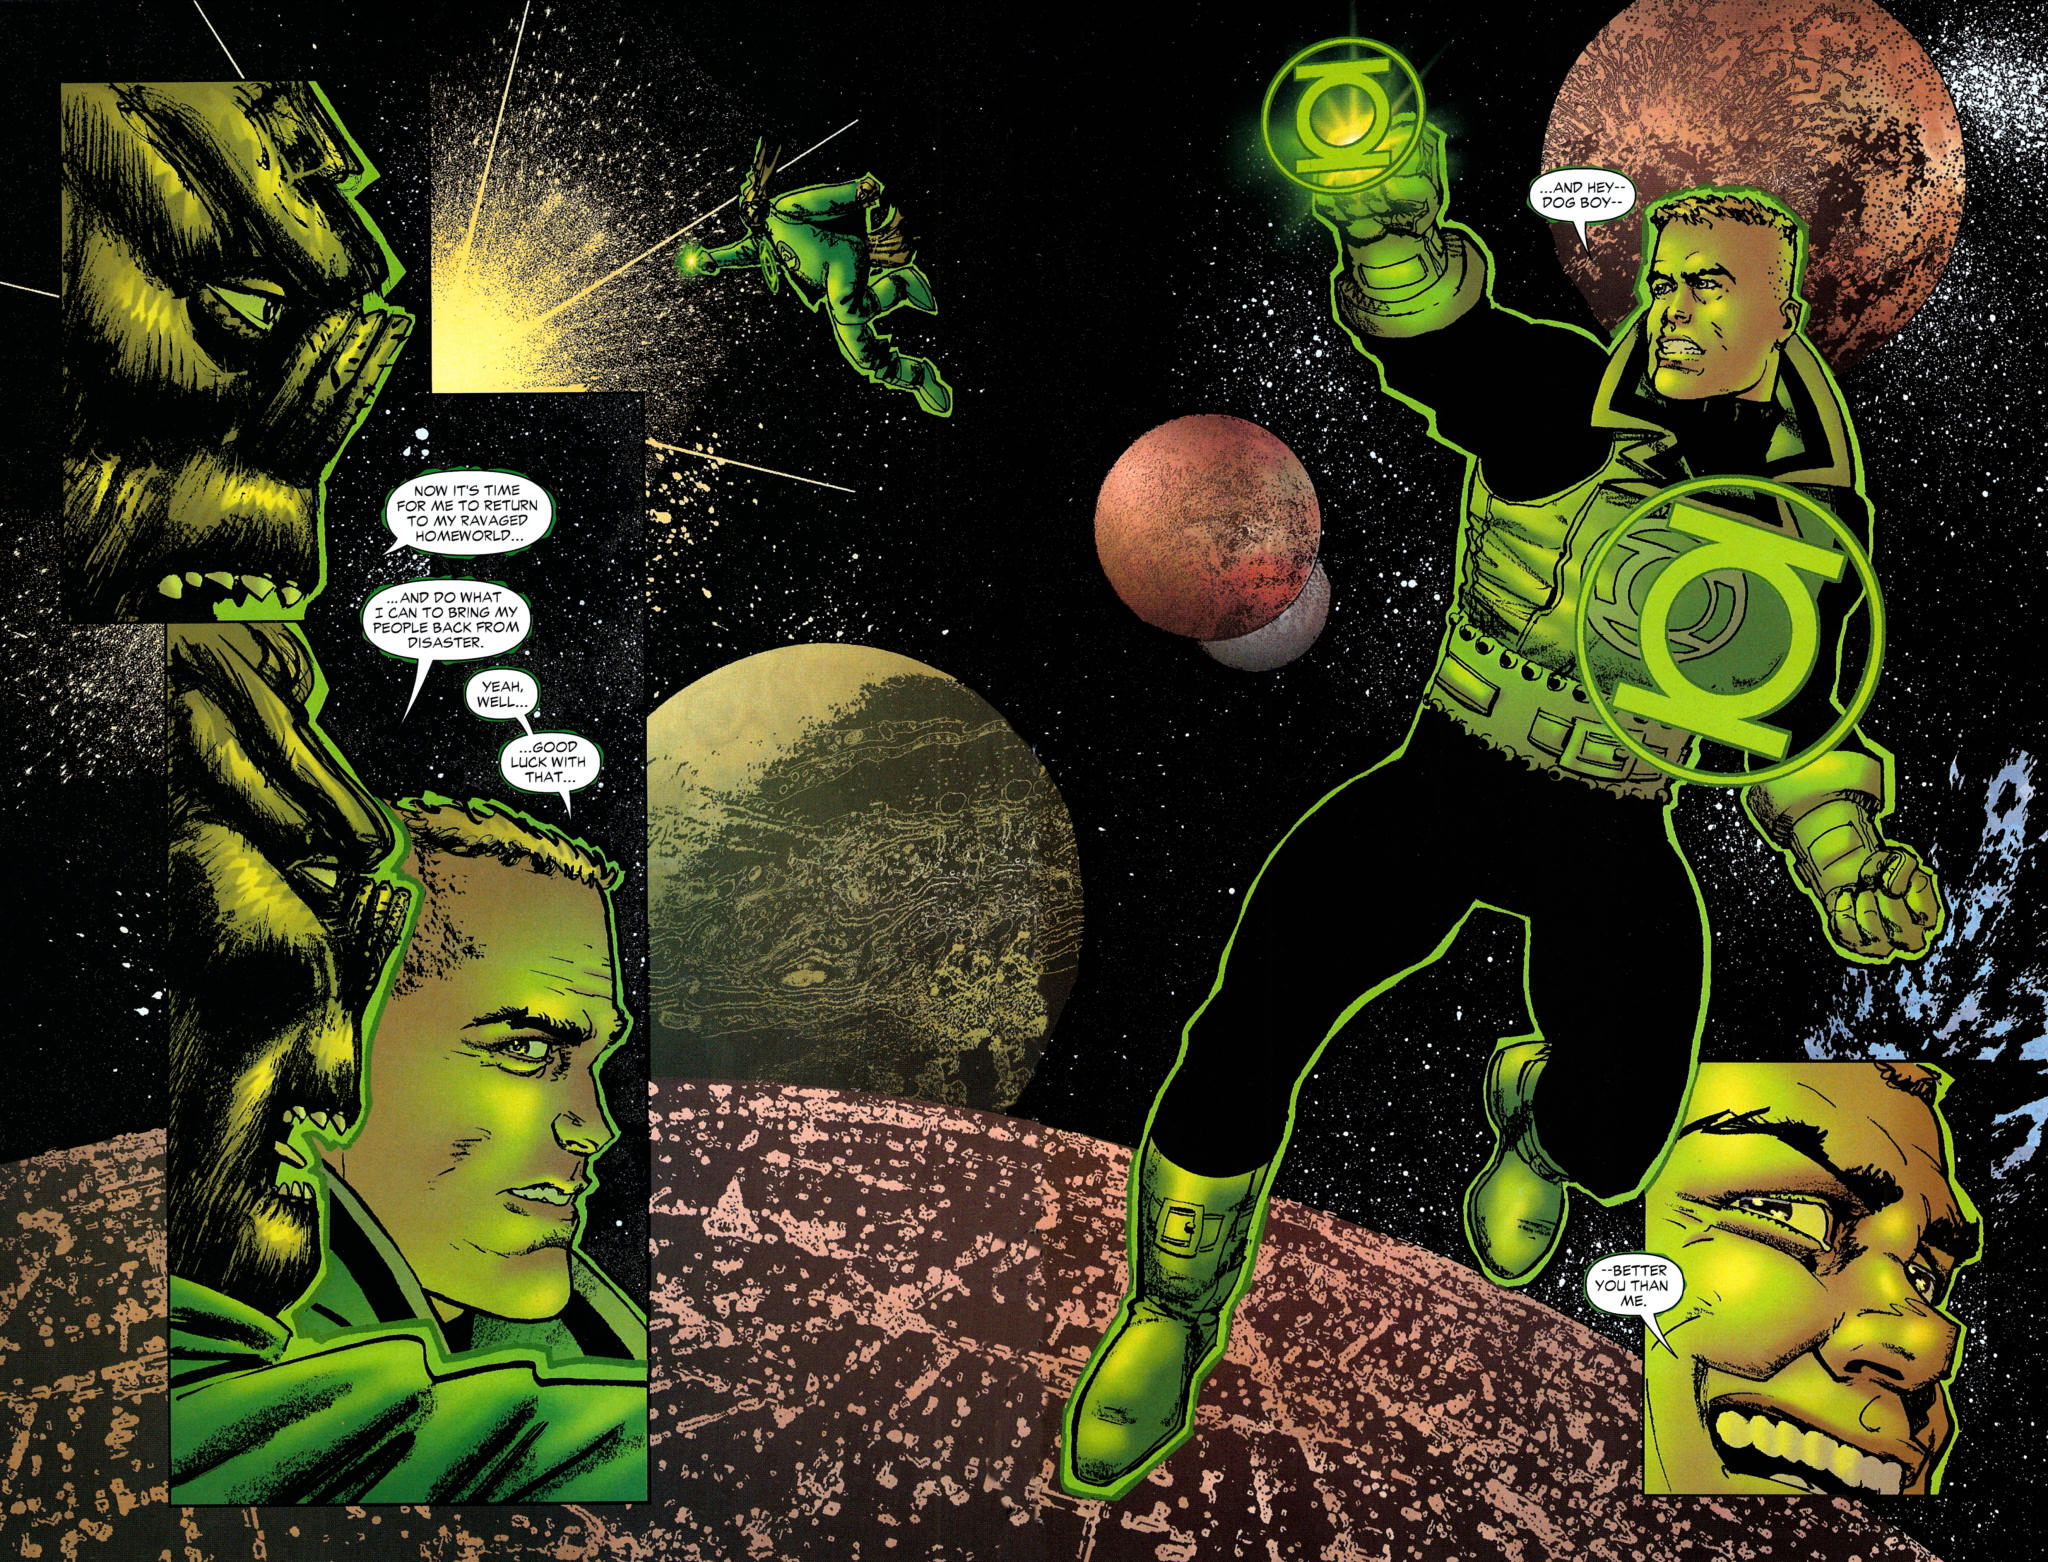 Read online Guy Gardner: Collateral Damage comic -  Issue #2 - 42